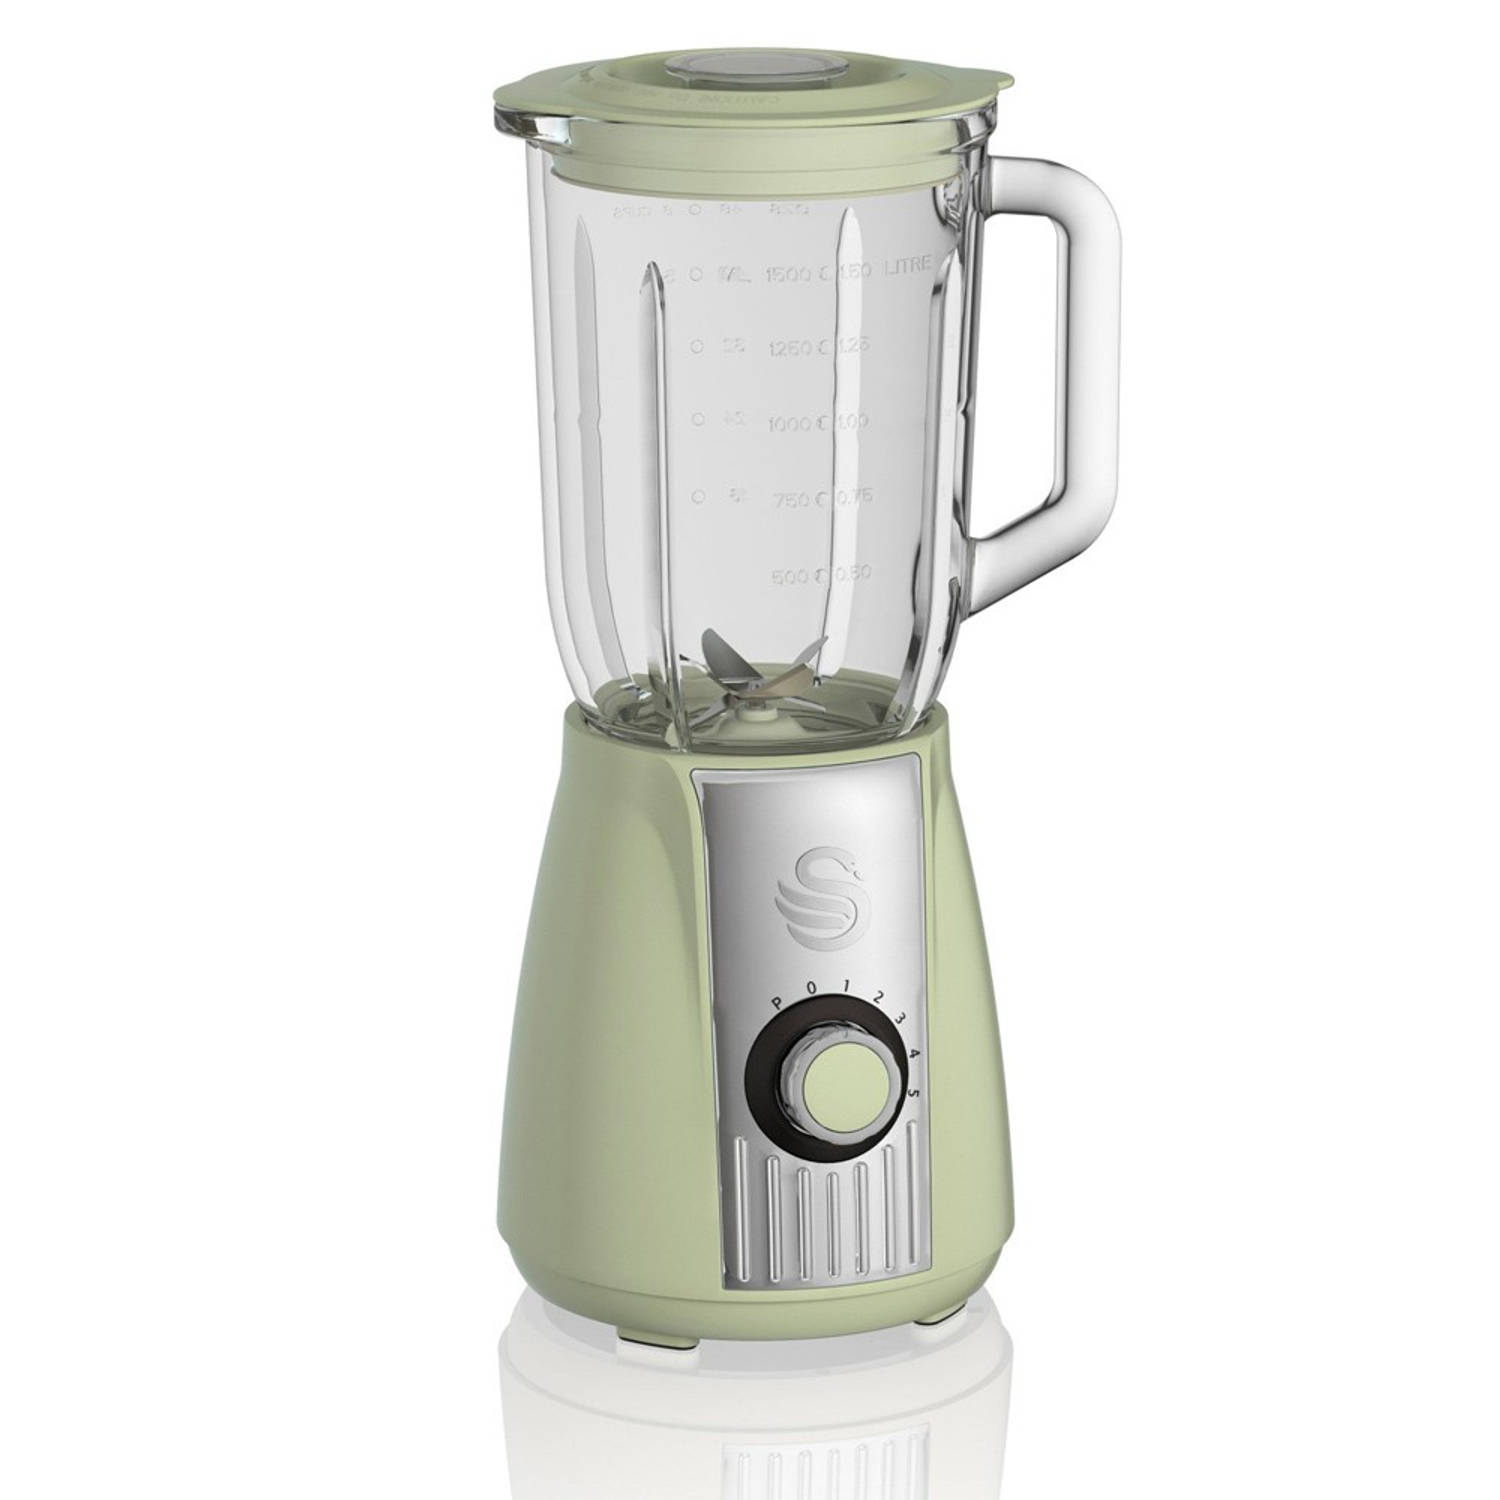 Swan SP20180GN Retro Blender Groen